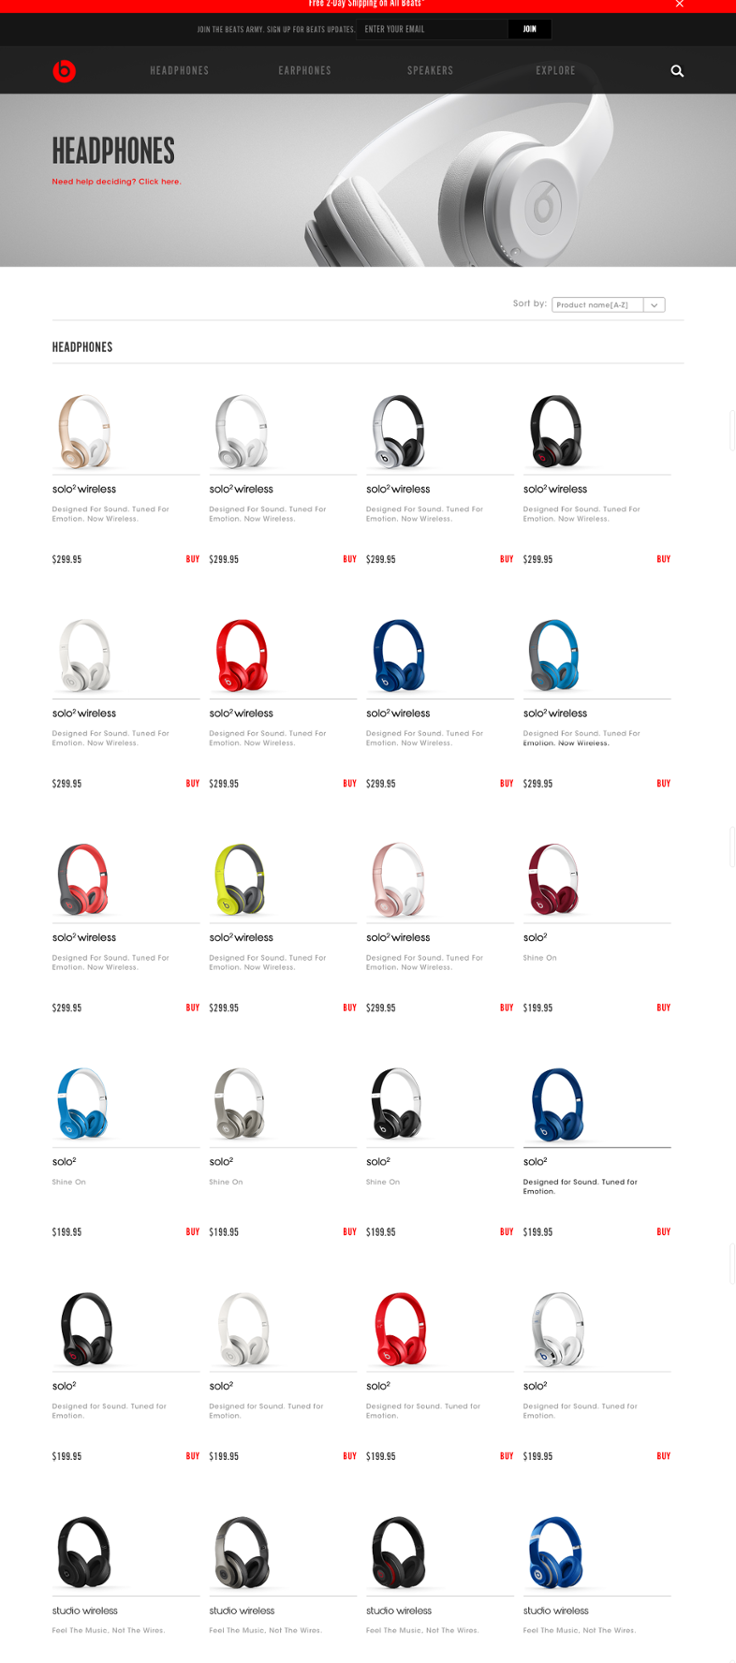 Headphones___Studio__Pro__Solo2__Mixr___Wireless___Beats_by_Dre-626421-edited.png